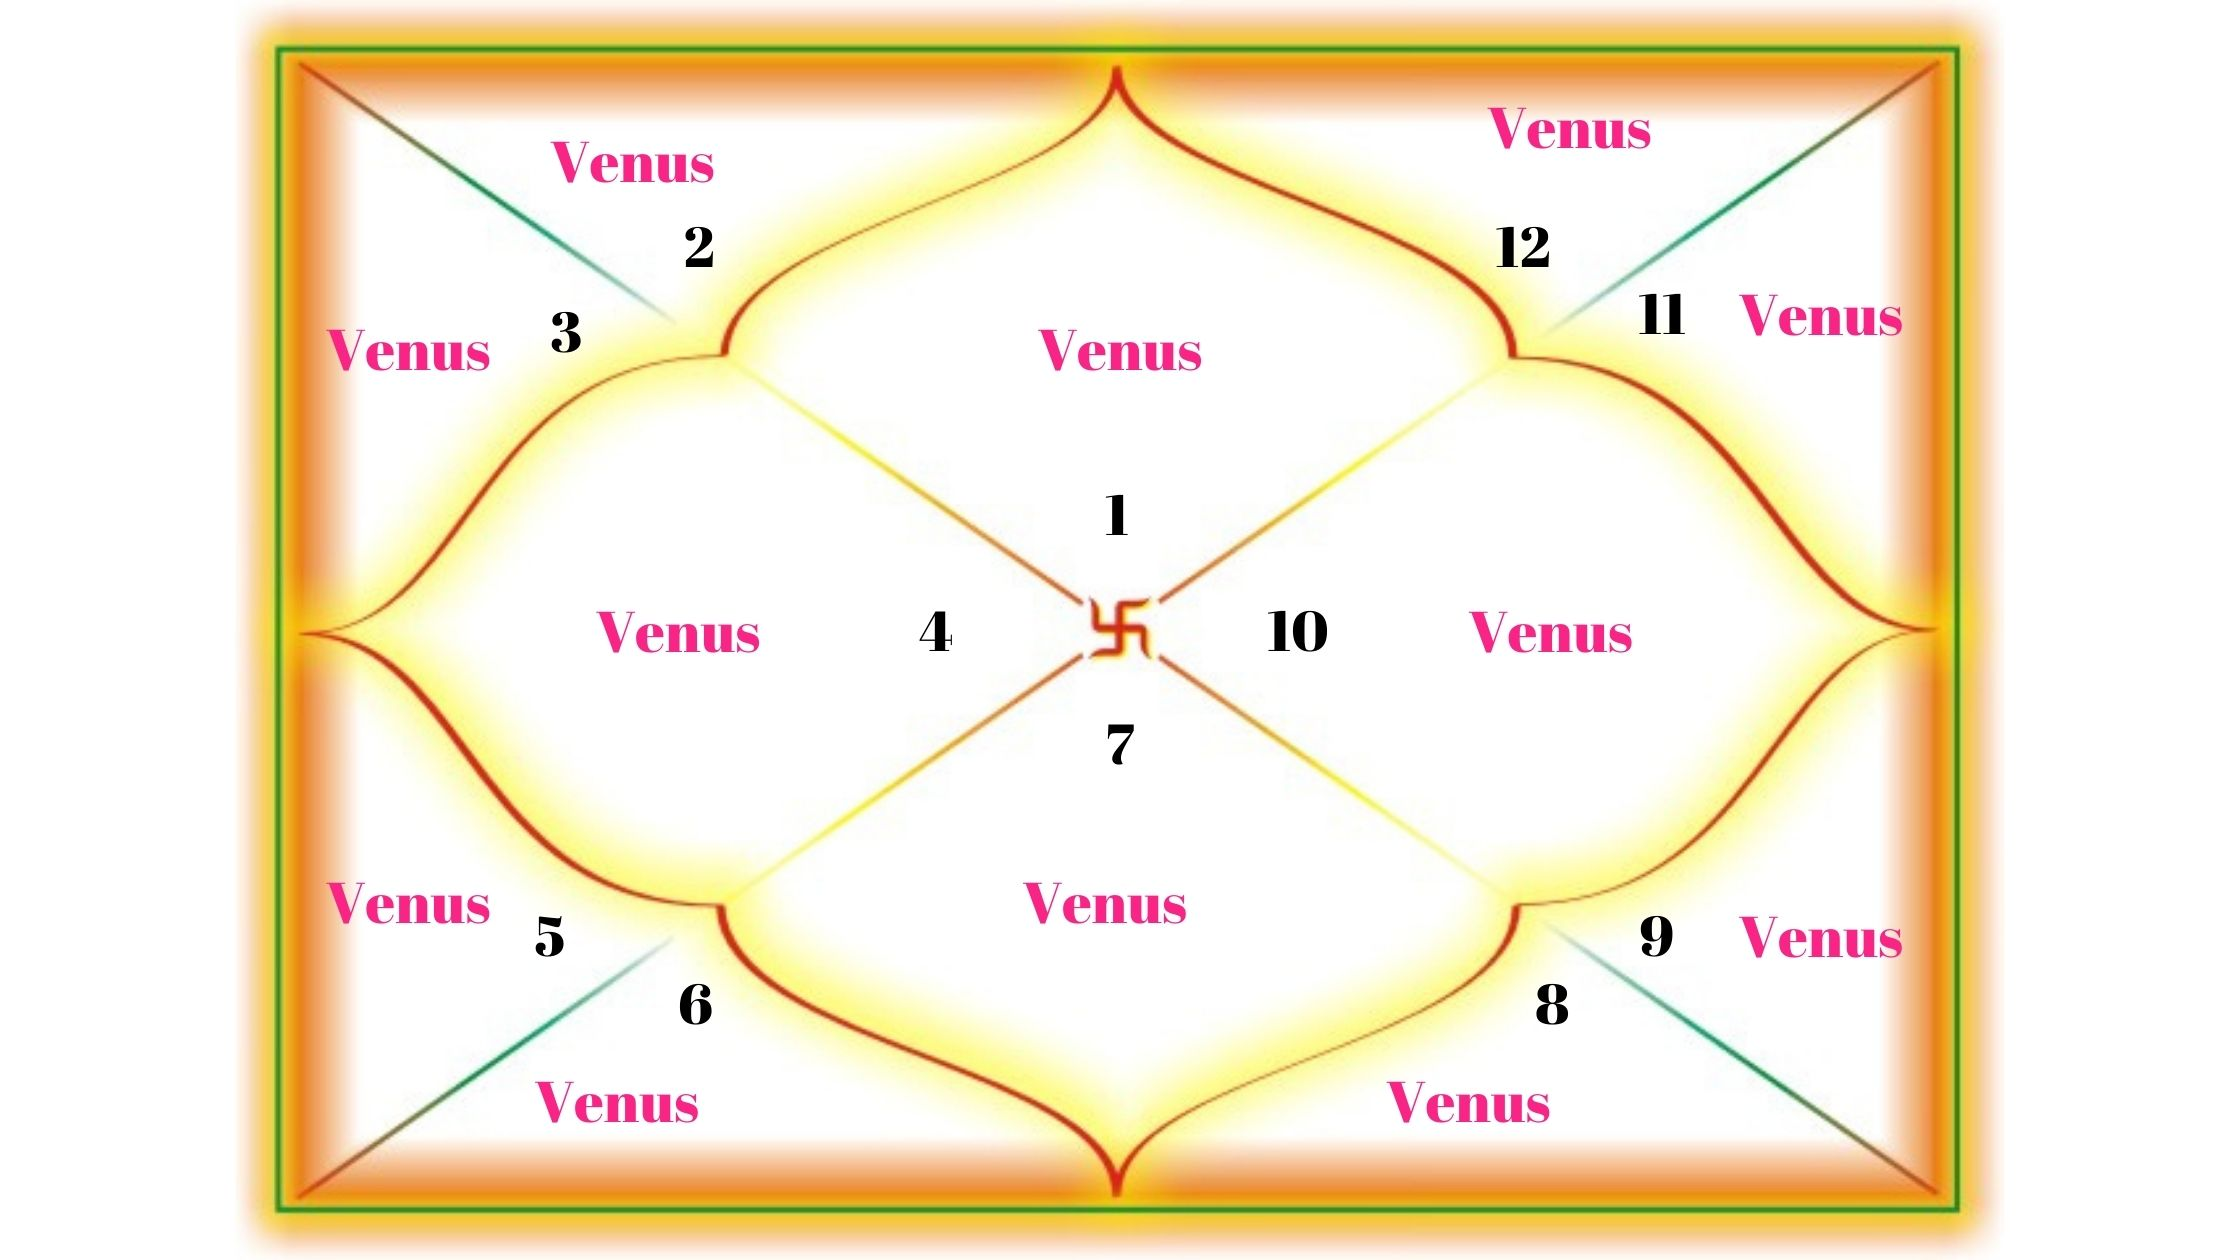 Venus in all 12 houses for Aries Ascendants